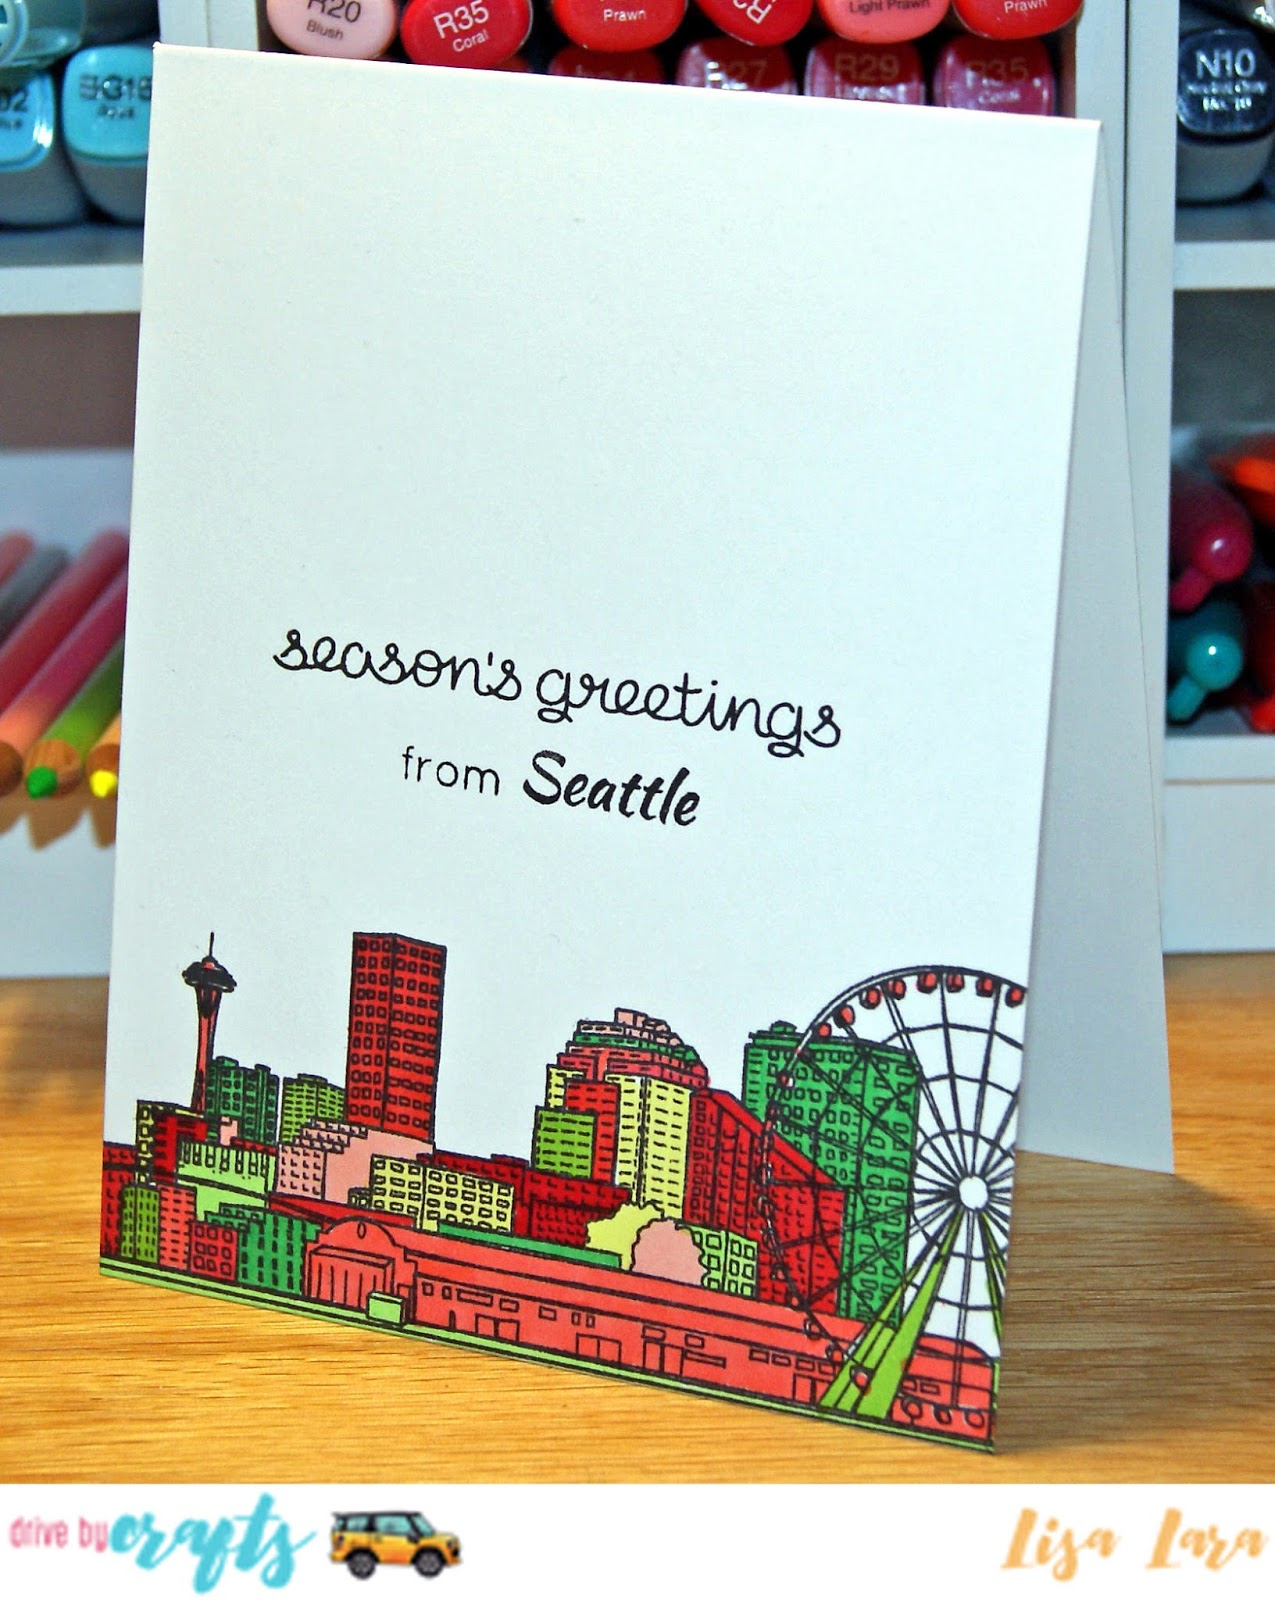 Drive by crafts seattle seasons greetings hello lisa here today with some seasons greetings from seattle kristyandbryce Images